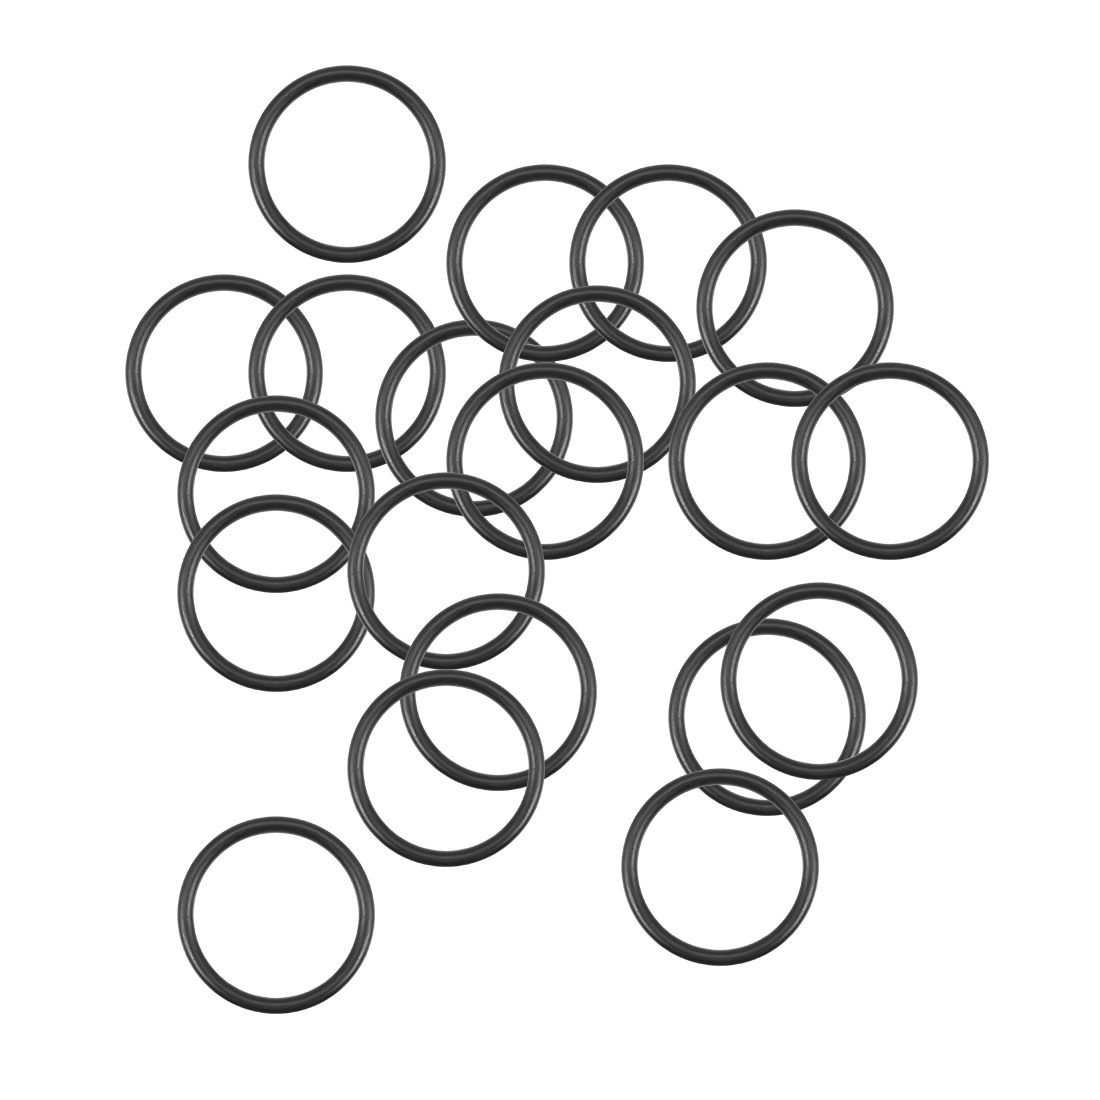 O-Rings Nitrile Rubber 15.6mm x 19.2mm x 1.8mm Round Seal Gasket 20Pcs